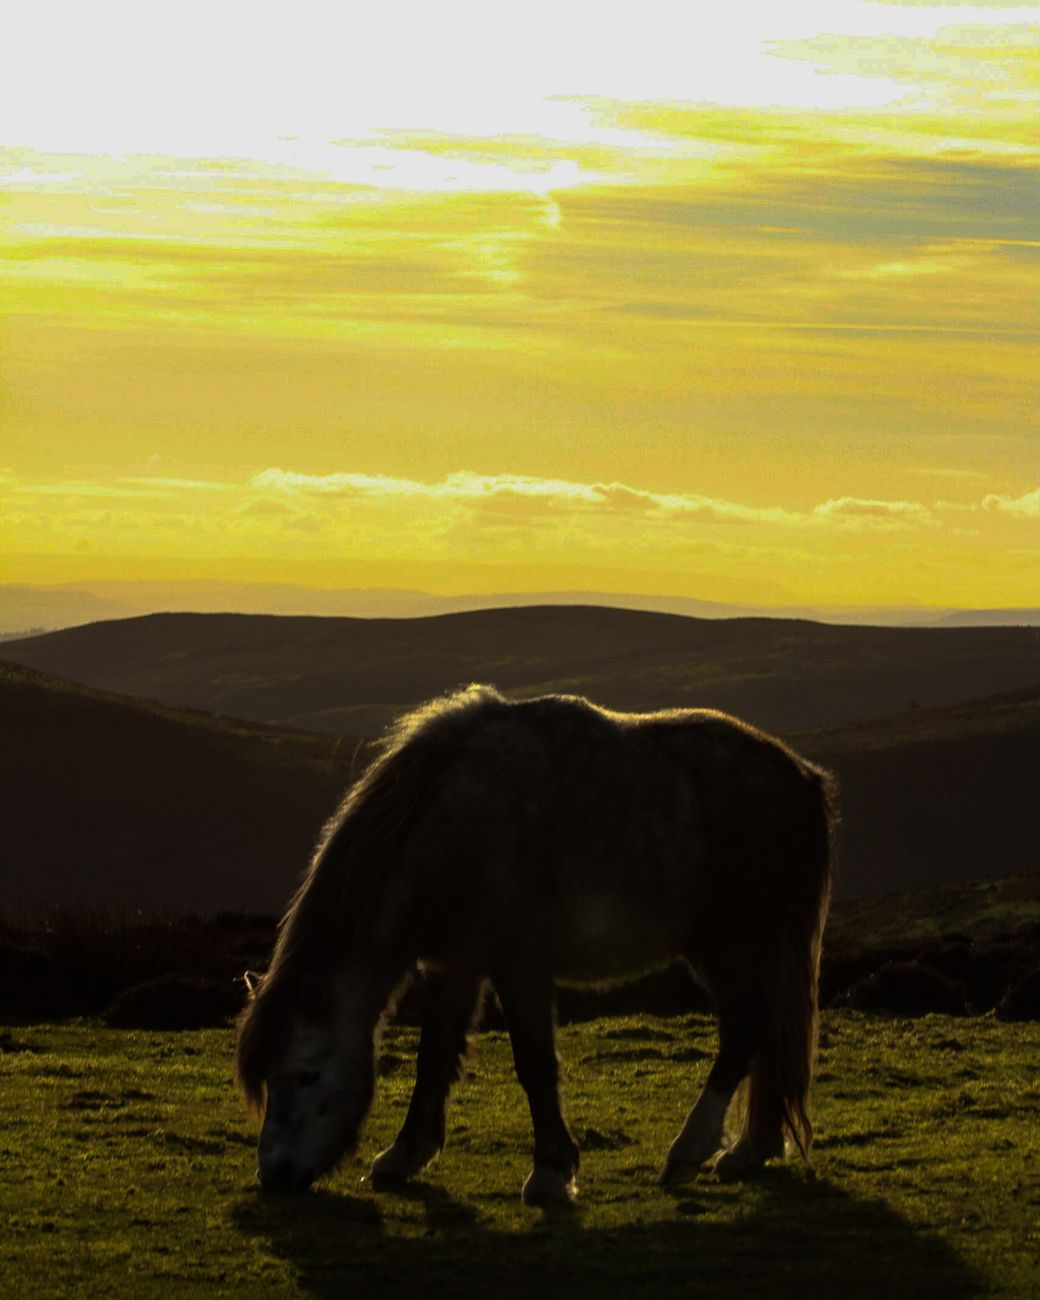 There are many wild ponies on the MYND